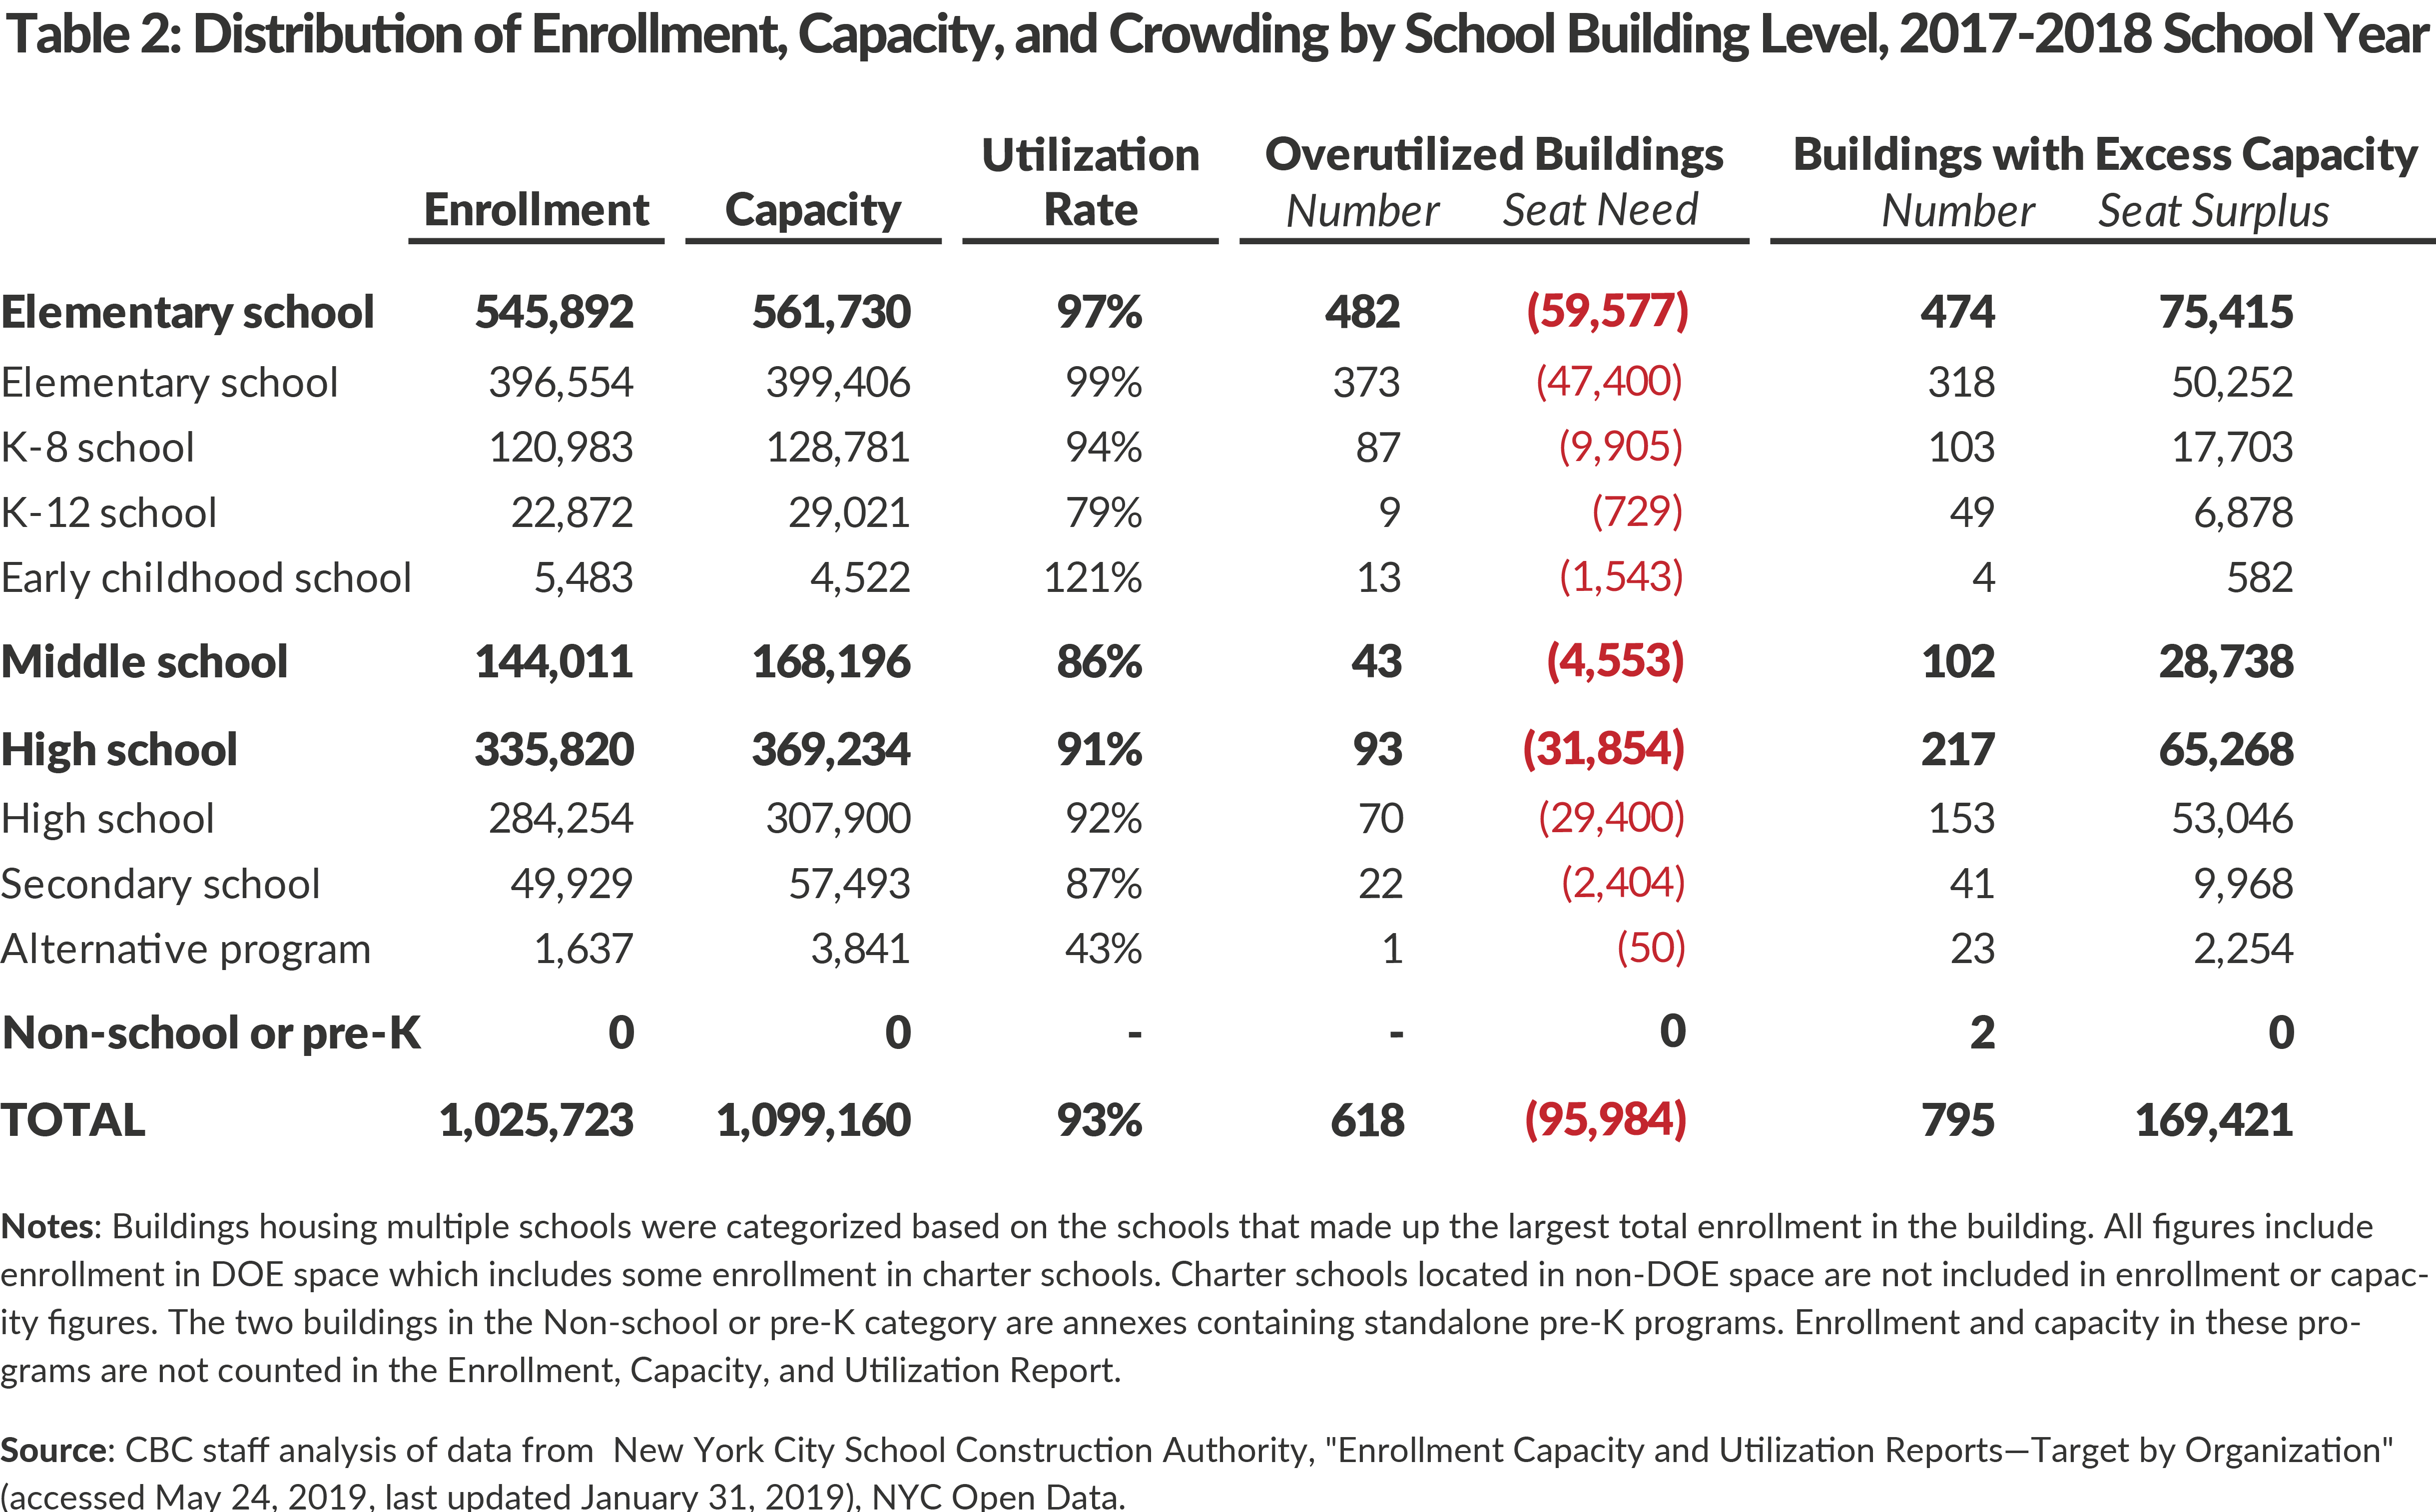 Table 2: Distribution of Enrollment, Capacity, and Crowding by School Building Level, 2017-2018 School Year